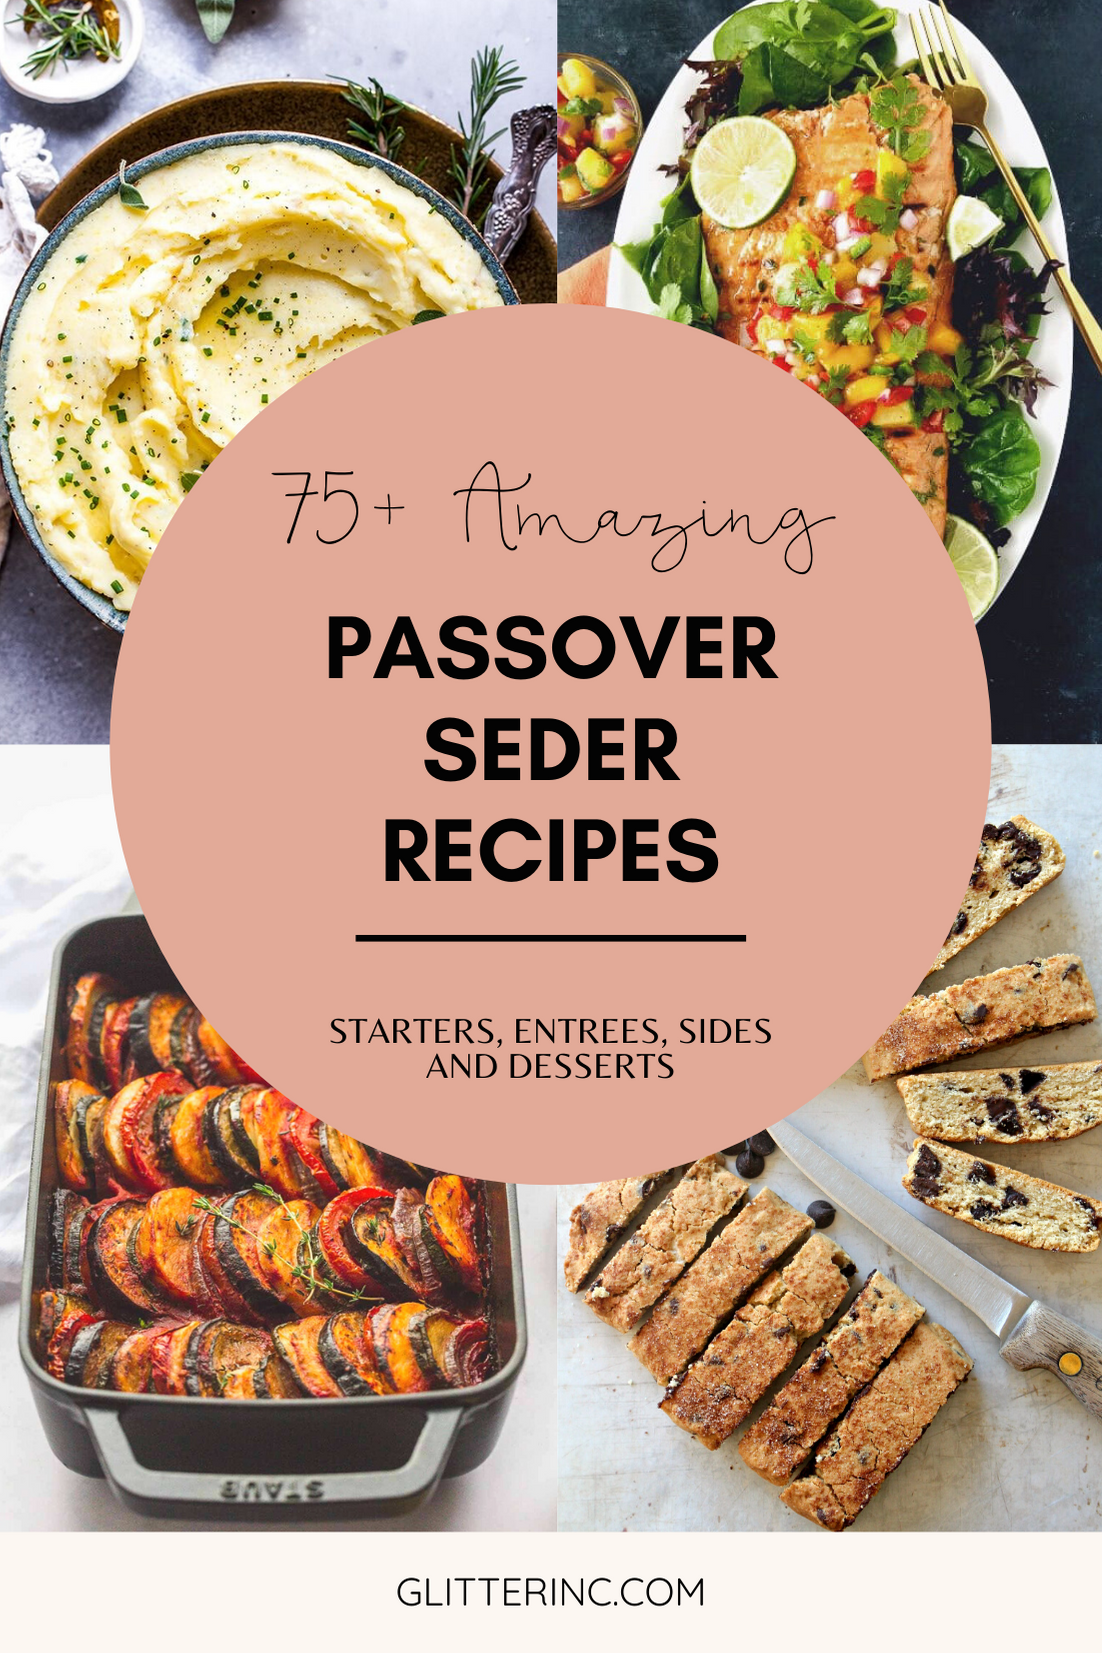 More than 100+ amazing recipes for the Jewish holiday of Passover, including a bunch of go-to, favorite Pesach recipes to make for Seder dinner, including appetizers, side dishes, and desserts, with plenty that work as great leftovers for the holiday week to follow. | glitterinc.com | @glitterinc